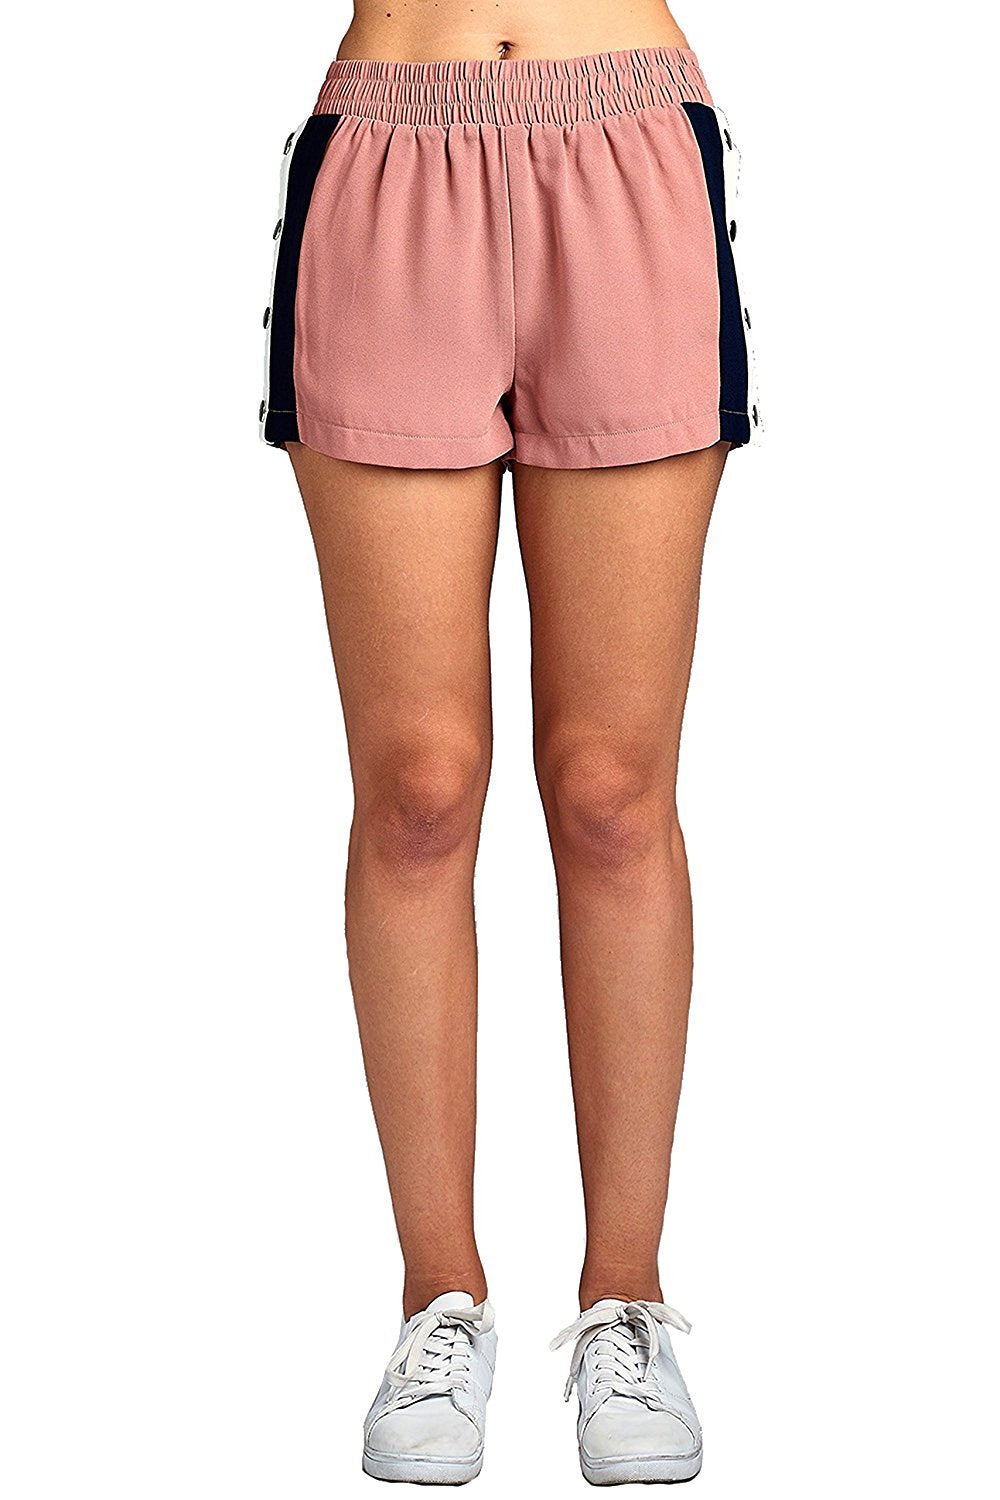 Khanomak Elastic Waist Snap-On With Side Contrast Button Tearaway Light Weight Shorts